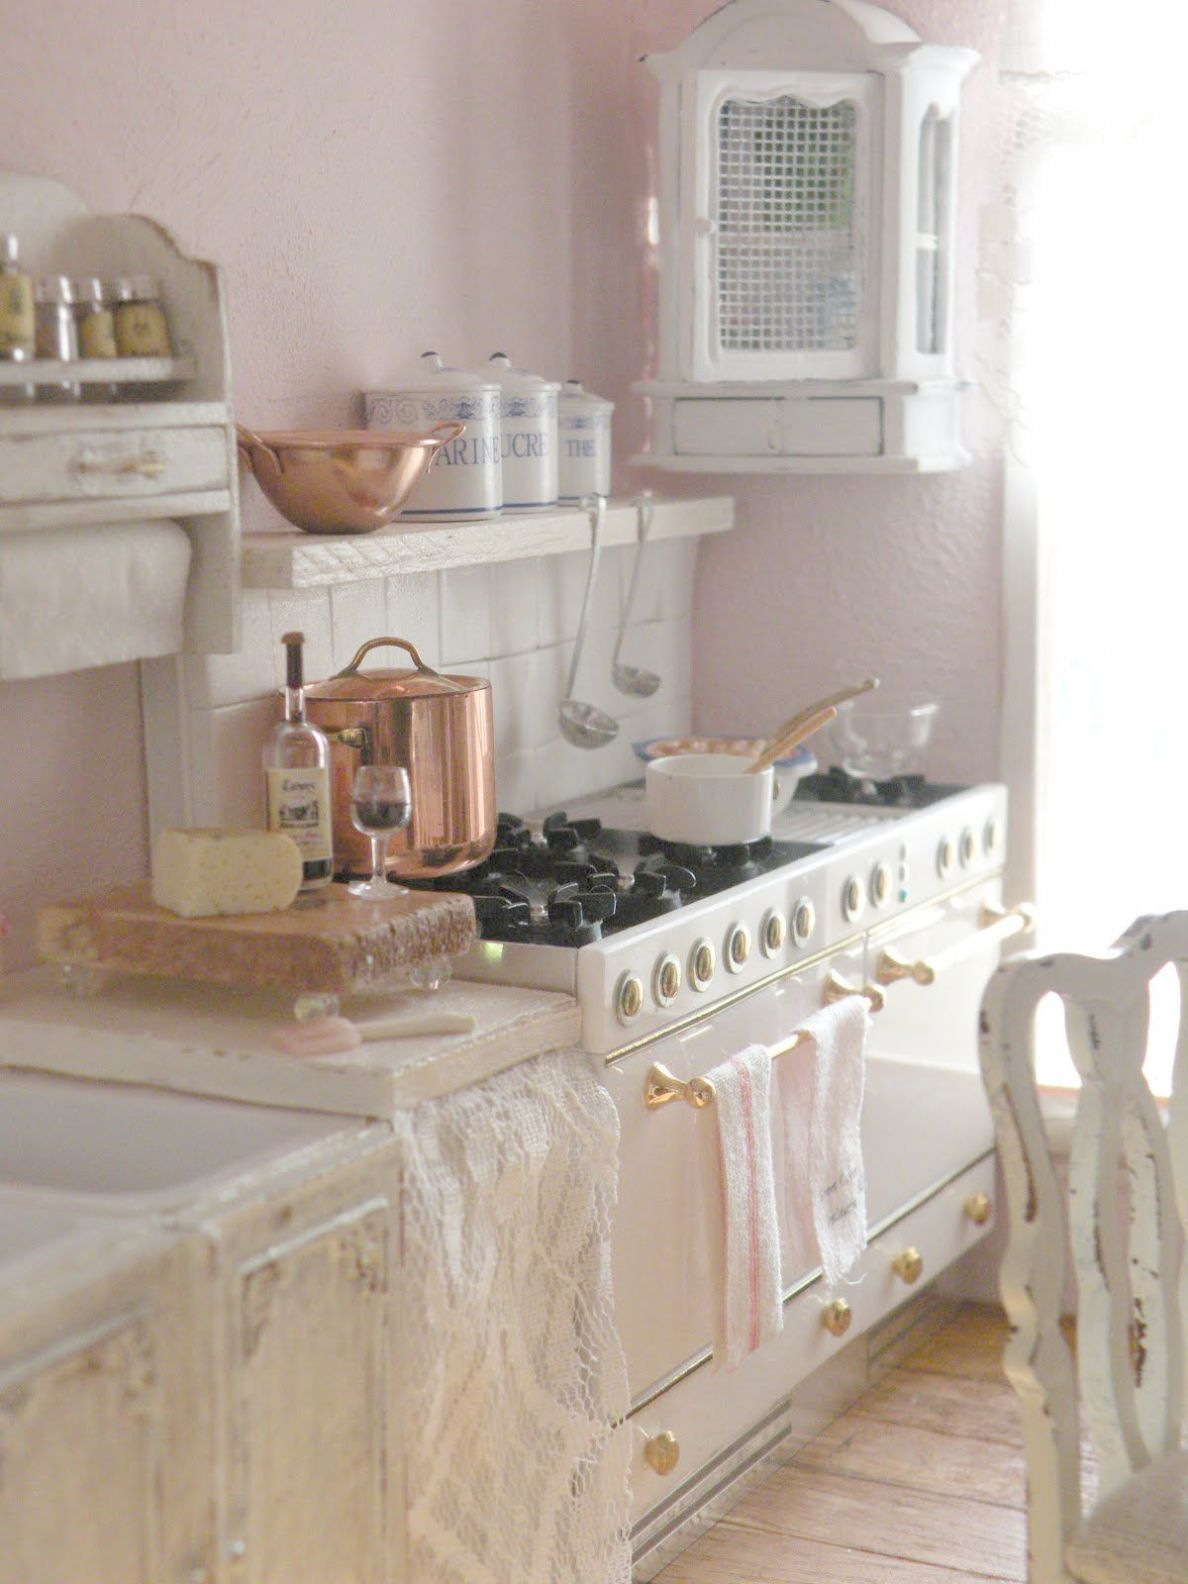 Home Decor Business Names It Is Home Decorators Collection Blinds How To Install Underneath Home Decorators Collection Newport Shabby Chic Kitchen Chic Kitchen